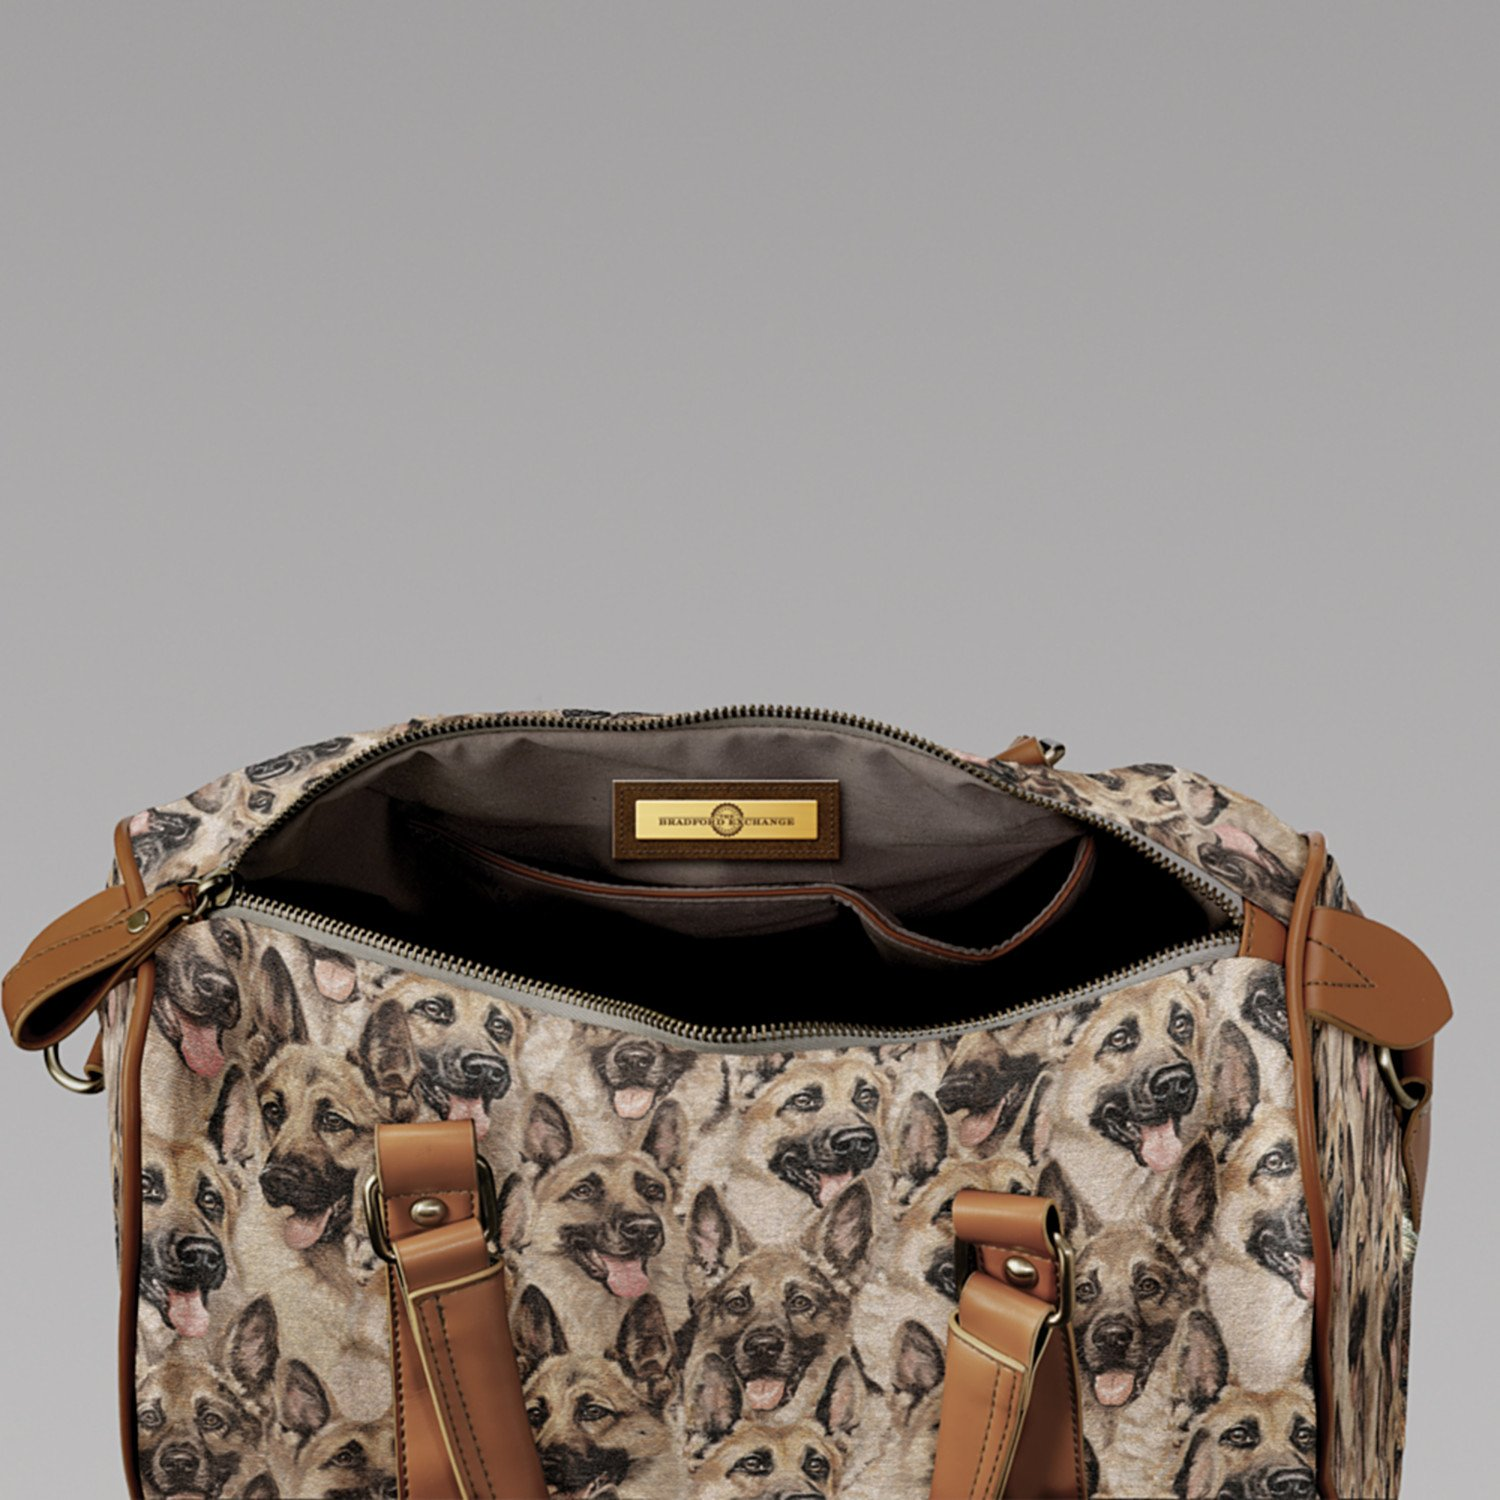 Constant Companion Dog Lovers Cotton Blend Tapestry Handbag: German Shepherd by The Bradford Exchange by Bradford Exchange (Image #4)